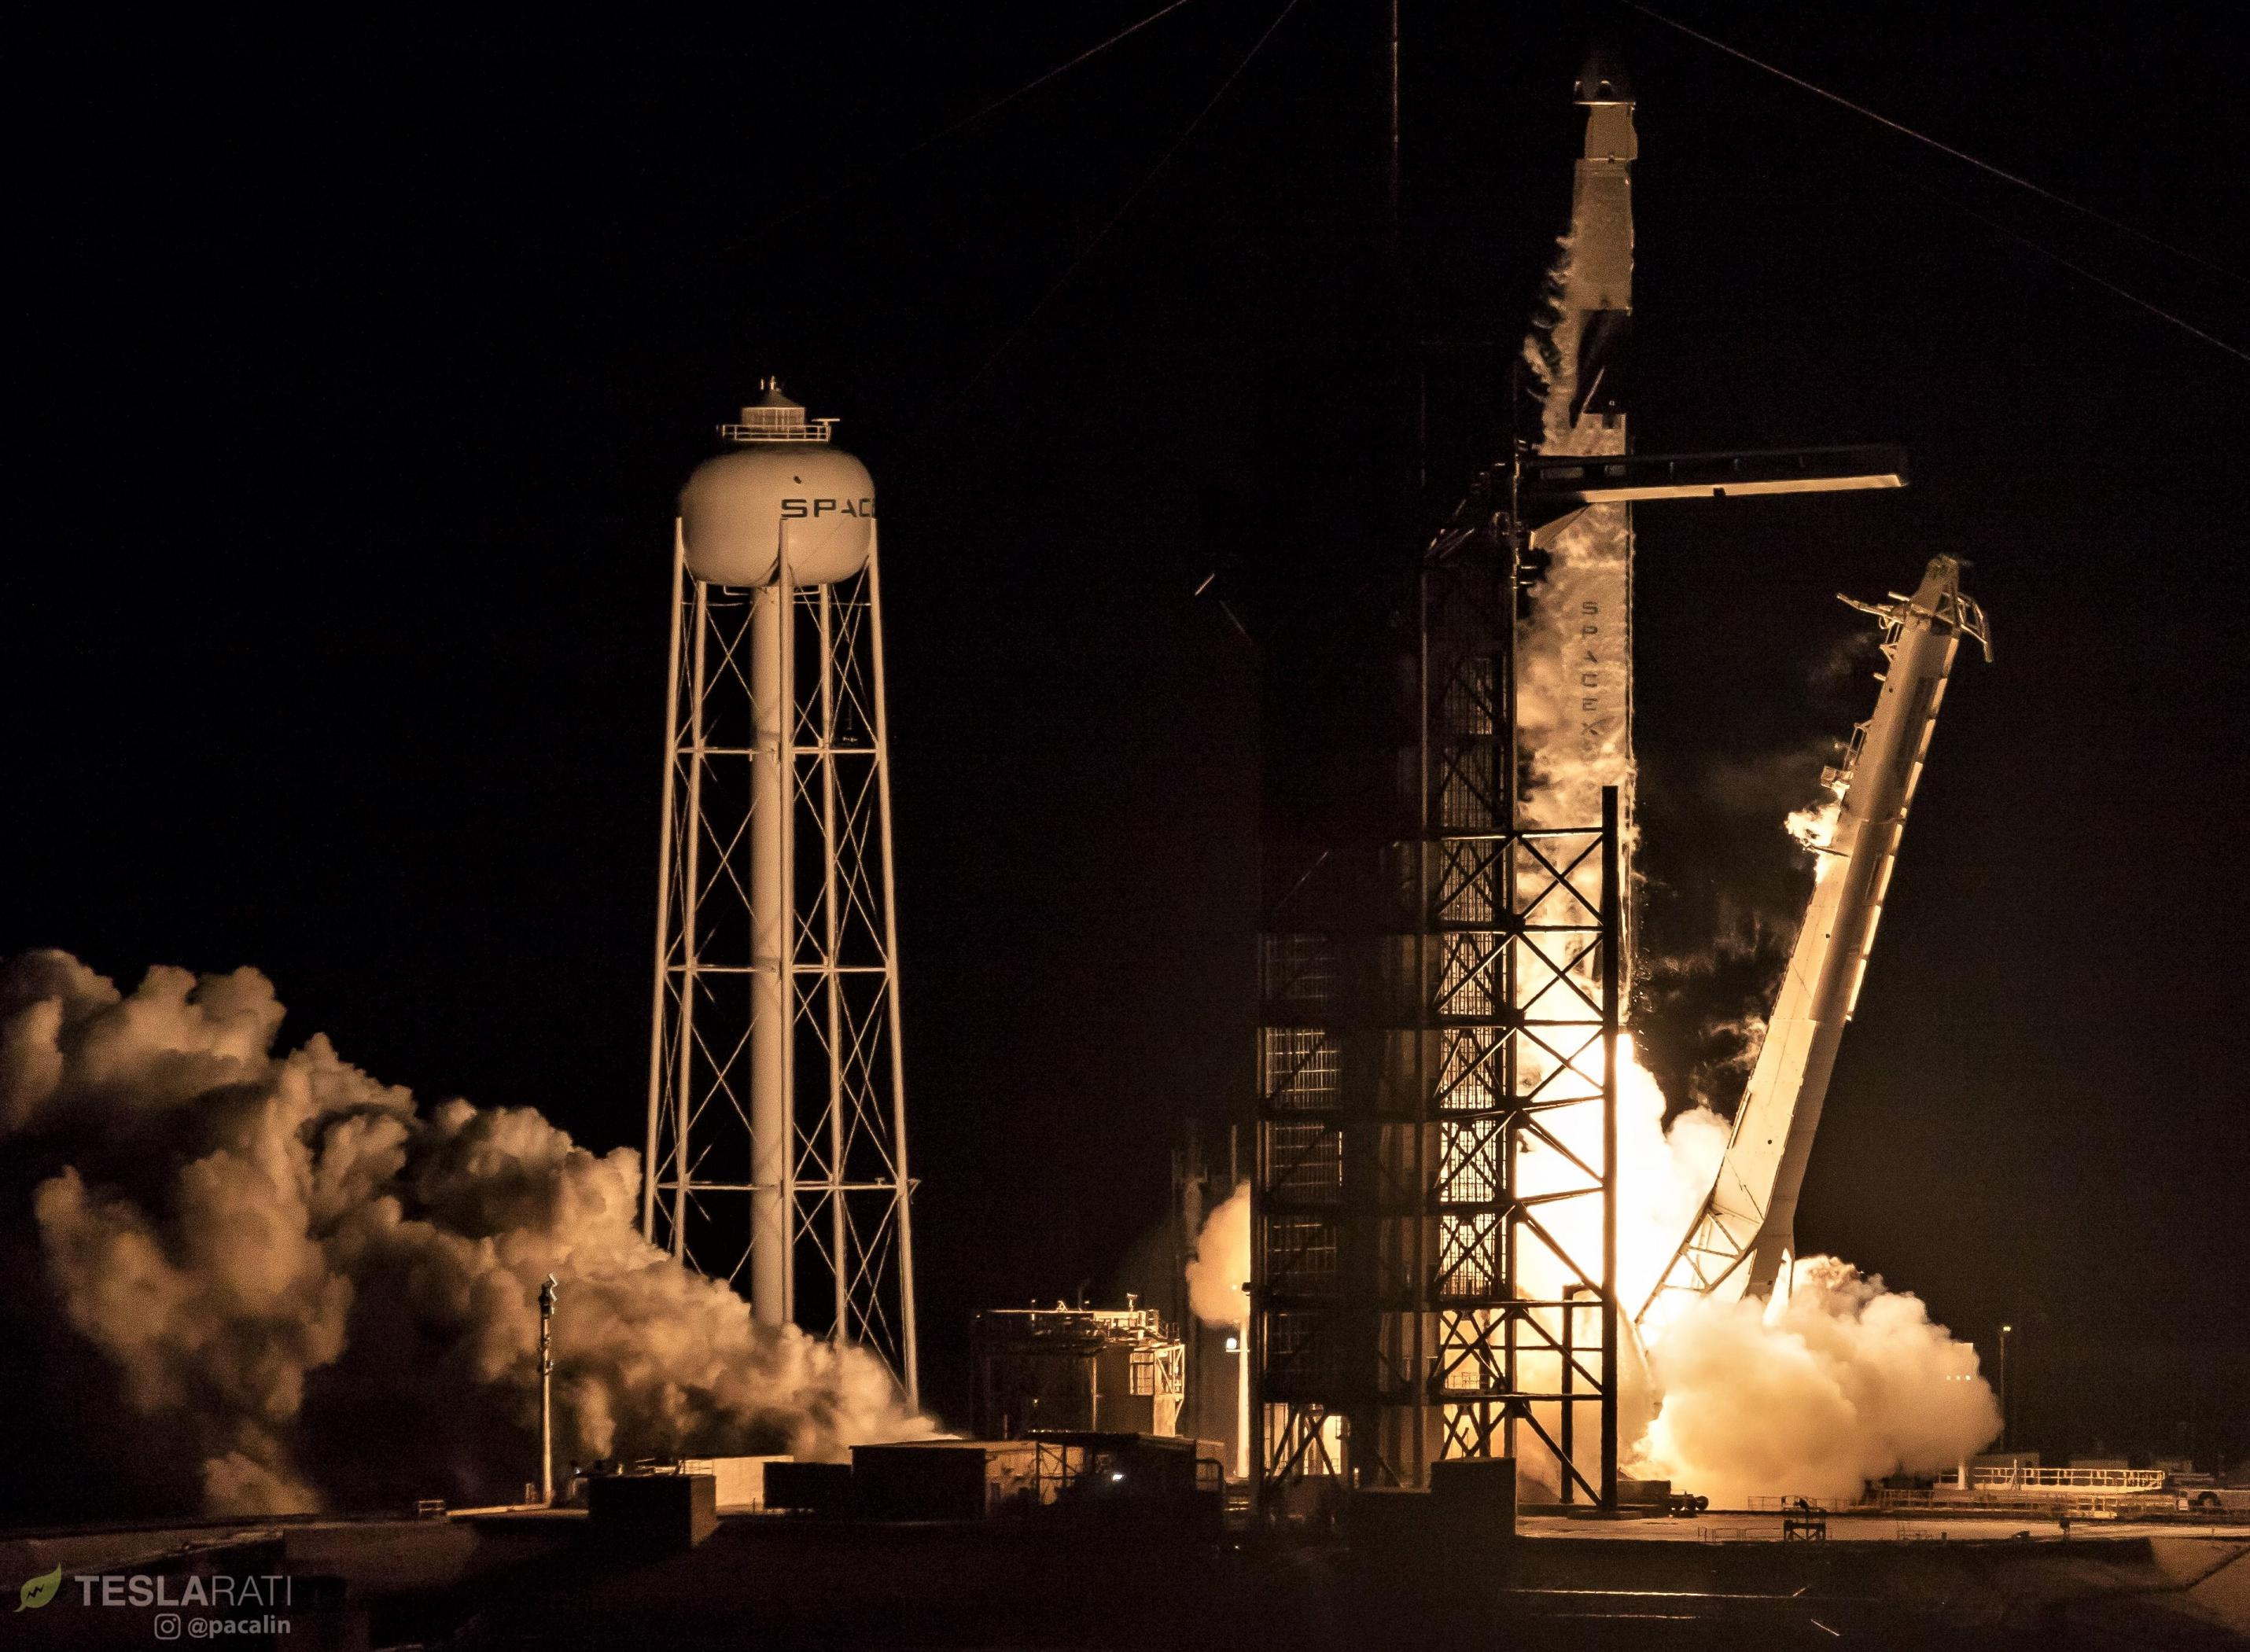 Crew Dragon Falcon 9 B1051 DM-1 liftoff 030219 (Pauline Acalin) 1 edit (c)